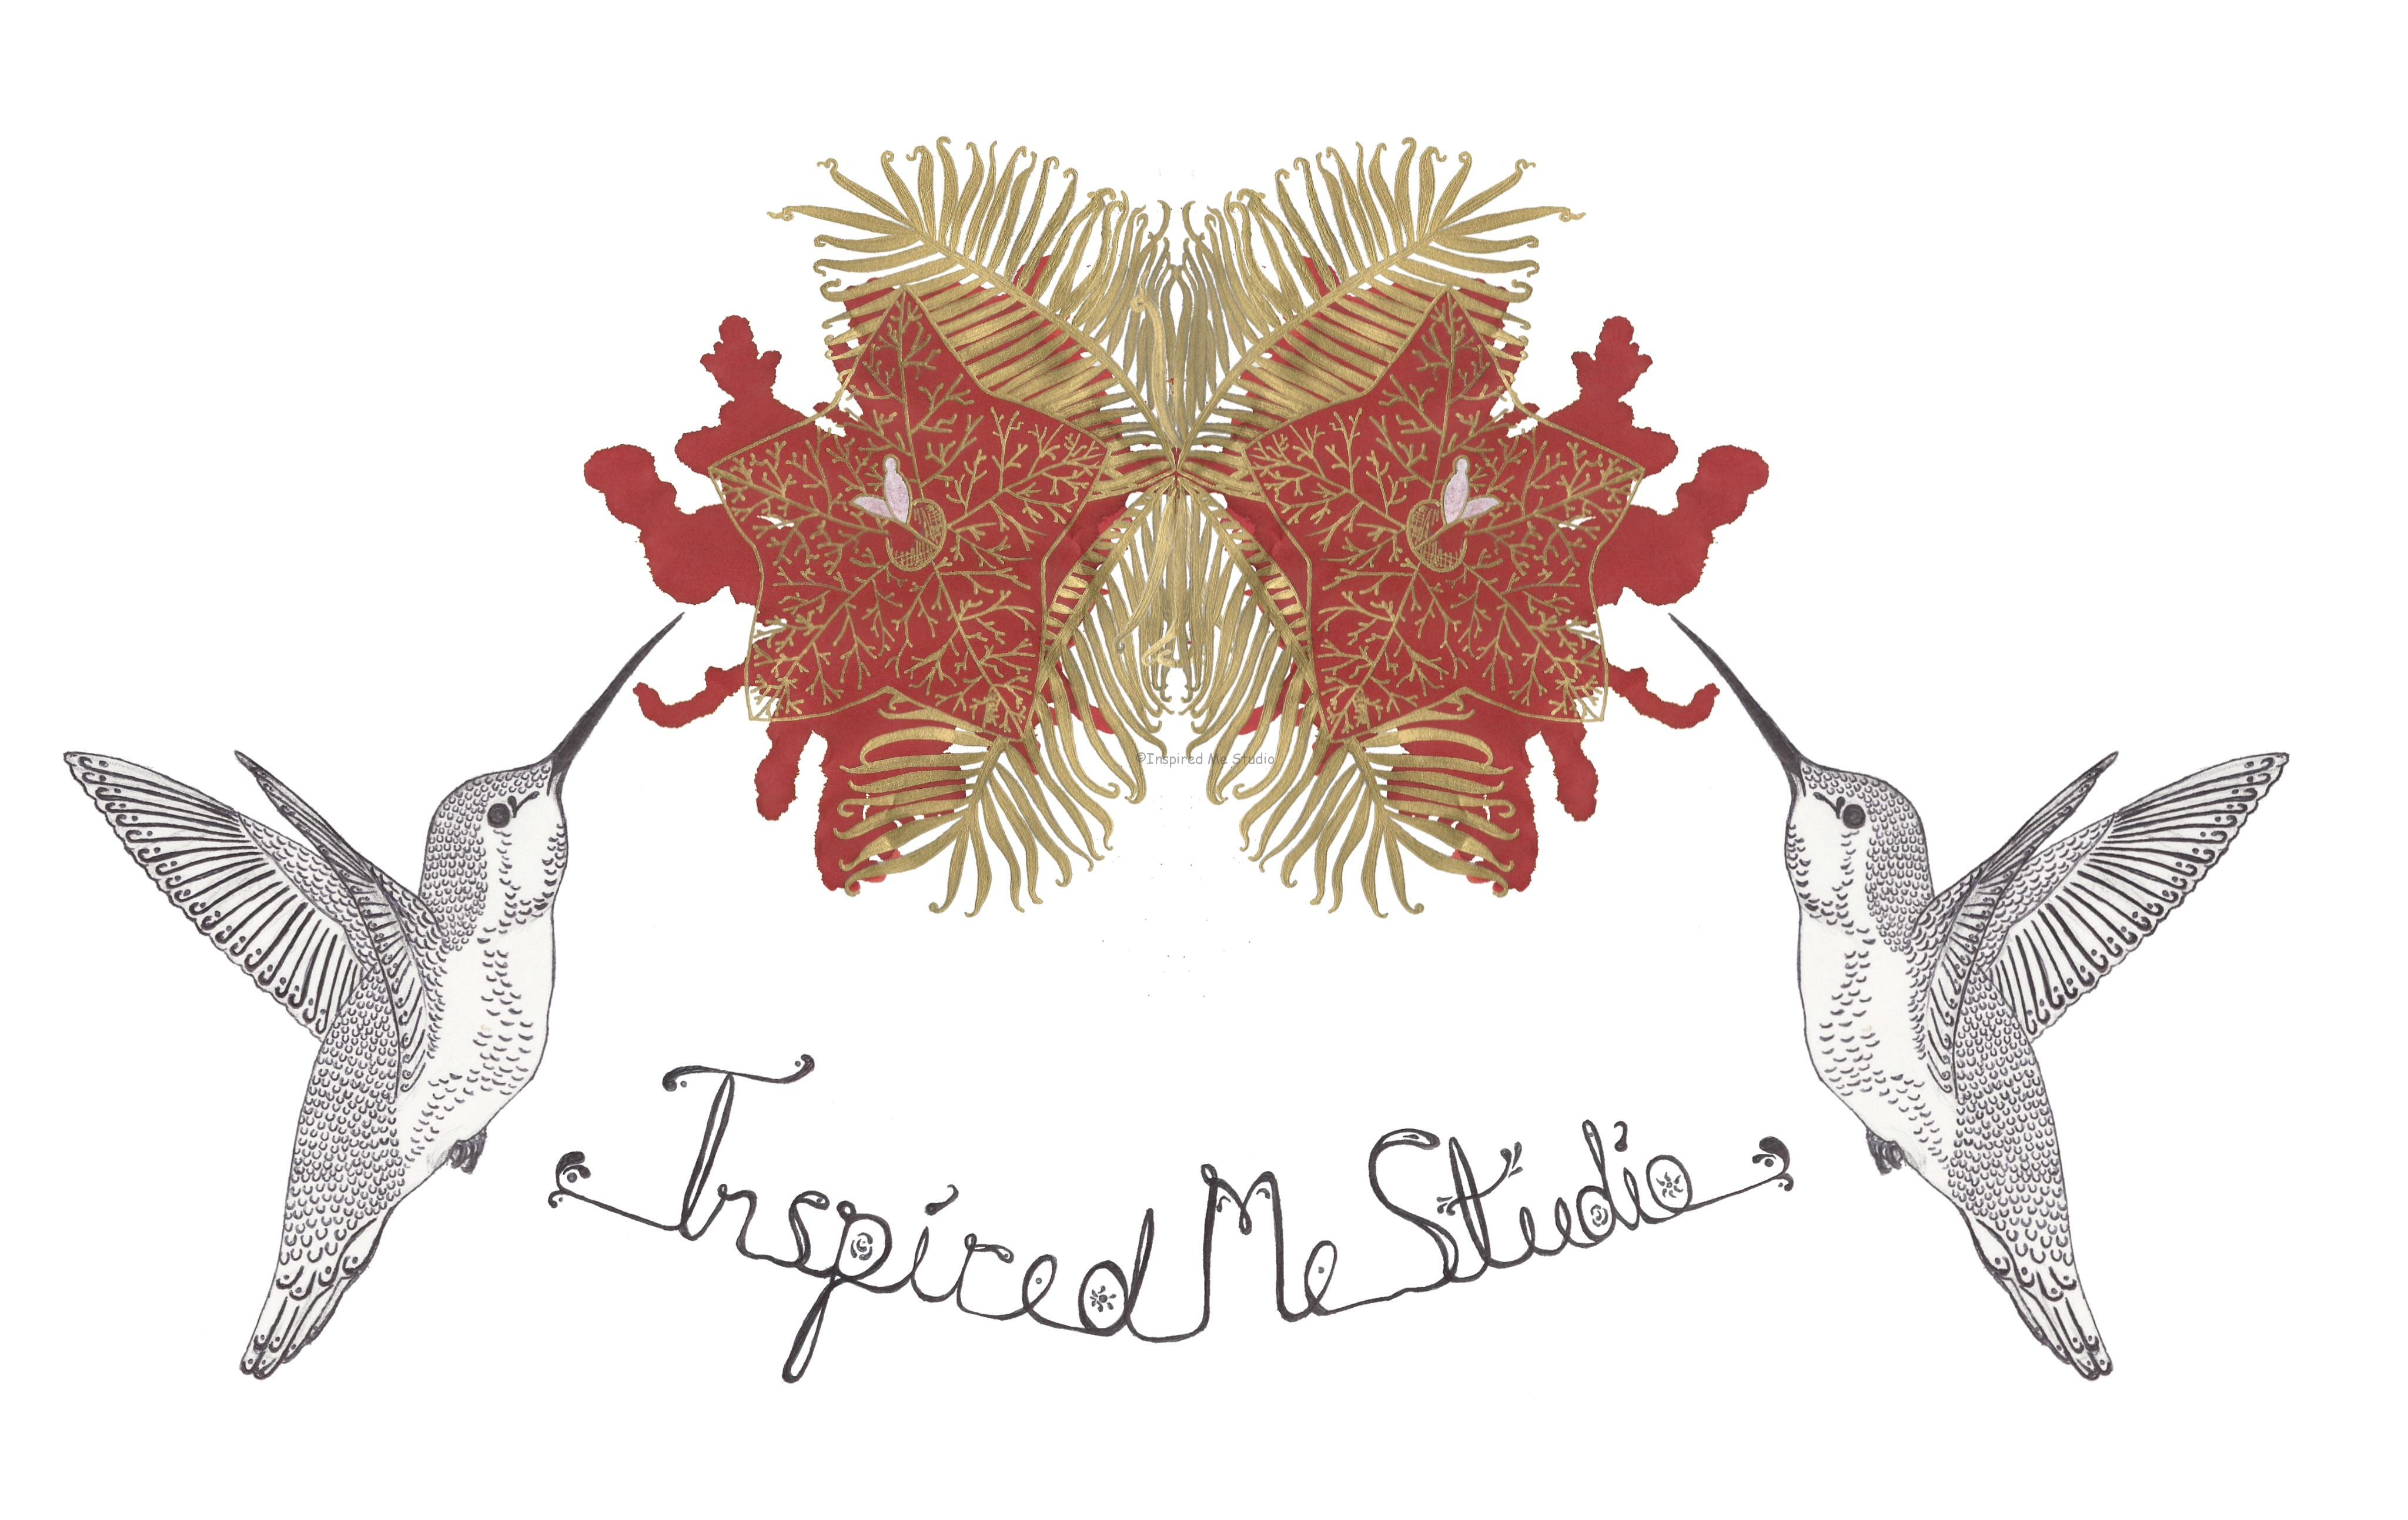 And here it is. The new Inspired Me Studio logo